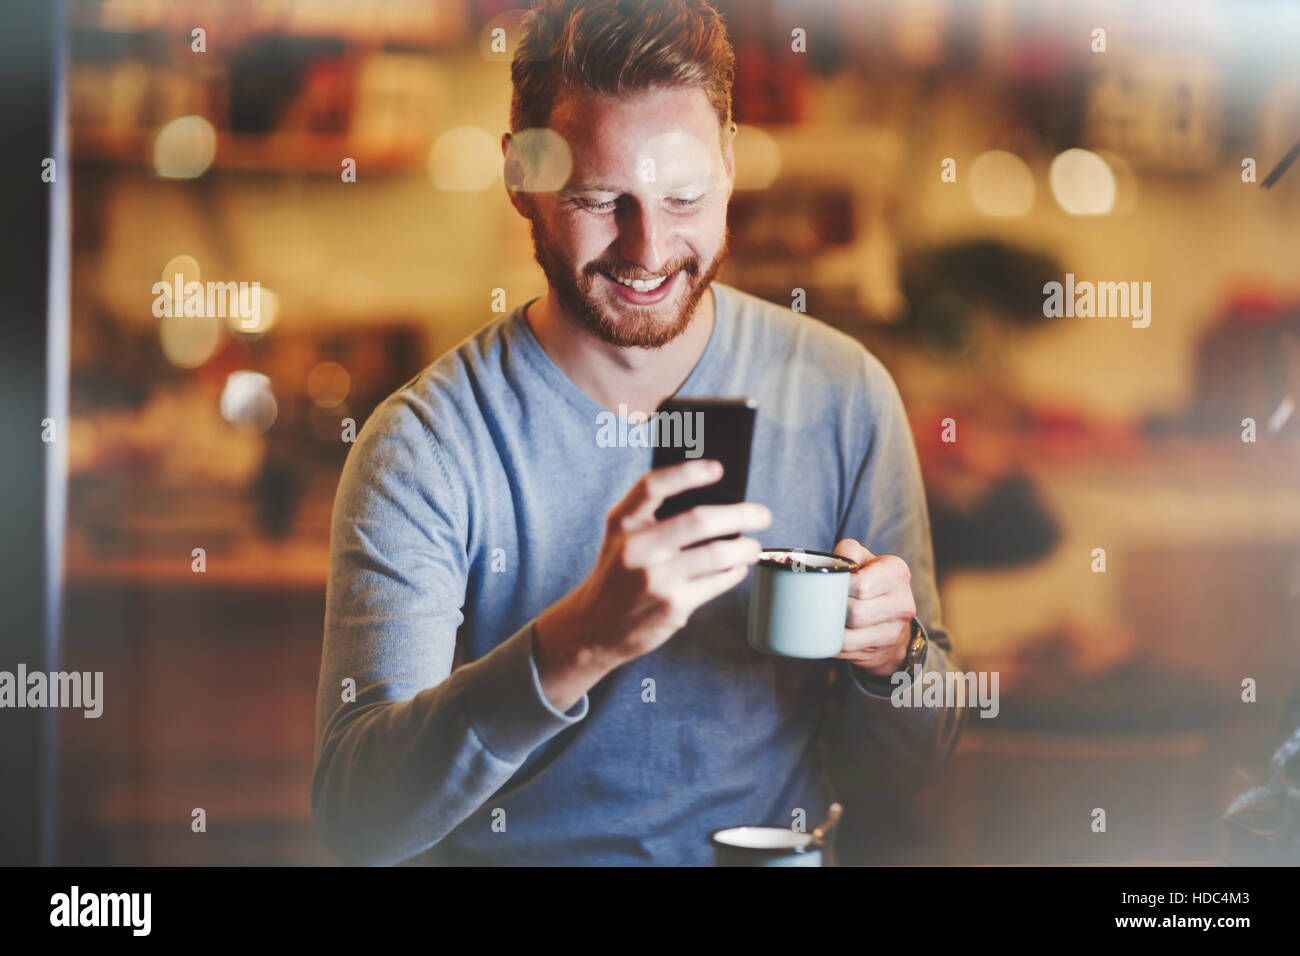 Cheerful businessman drinking coffee in cafe - Stock Image